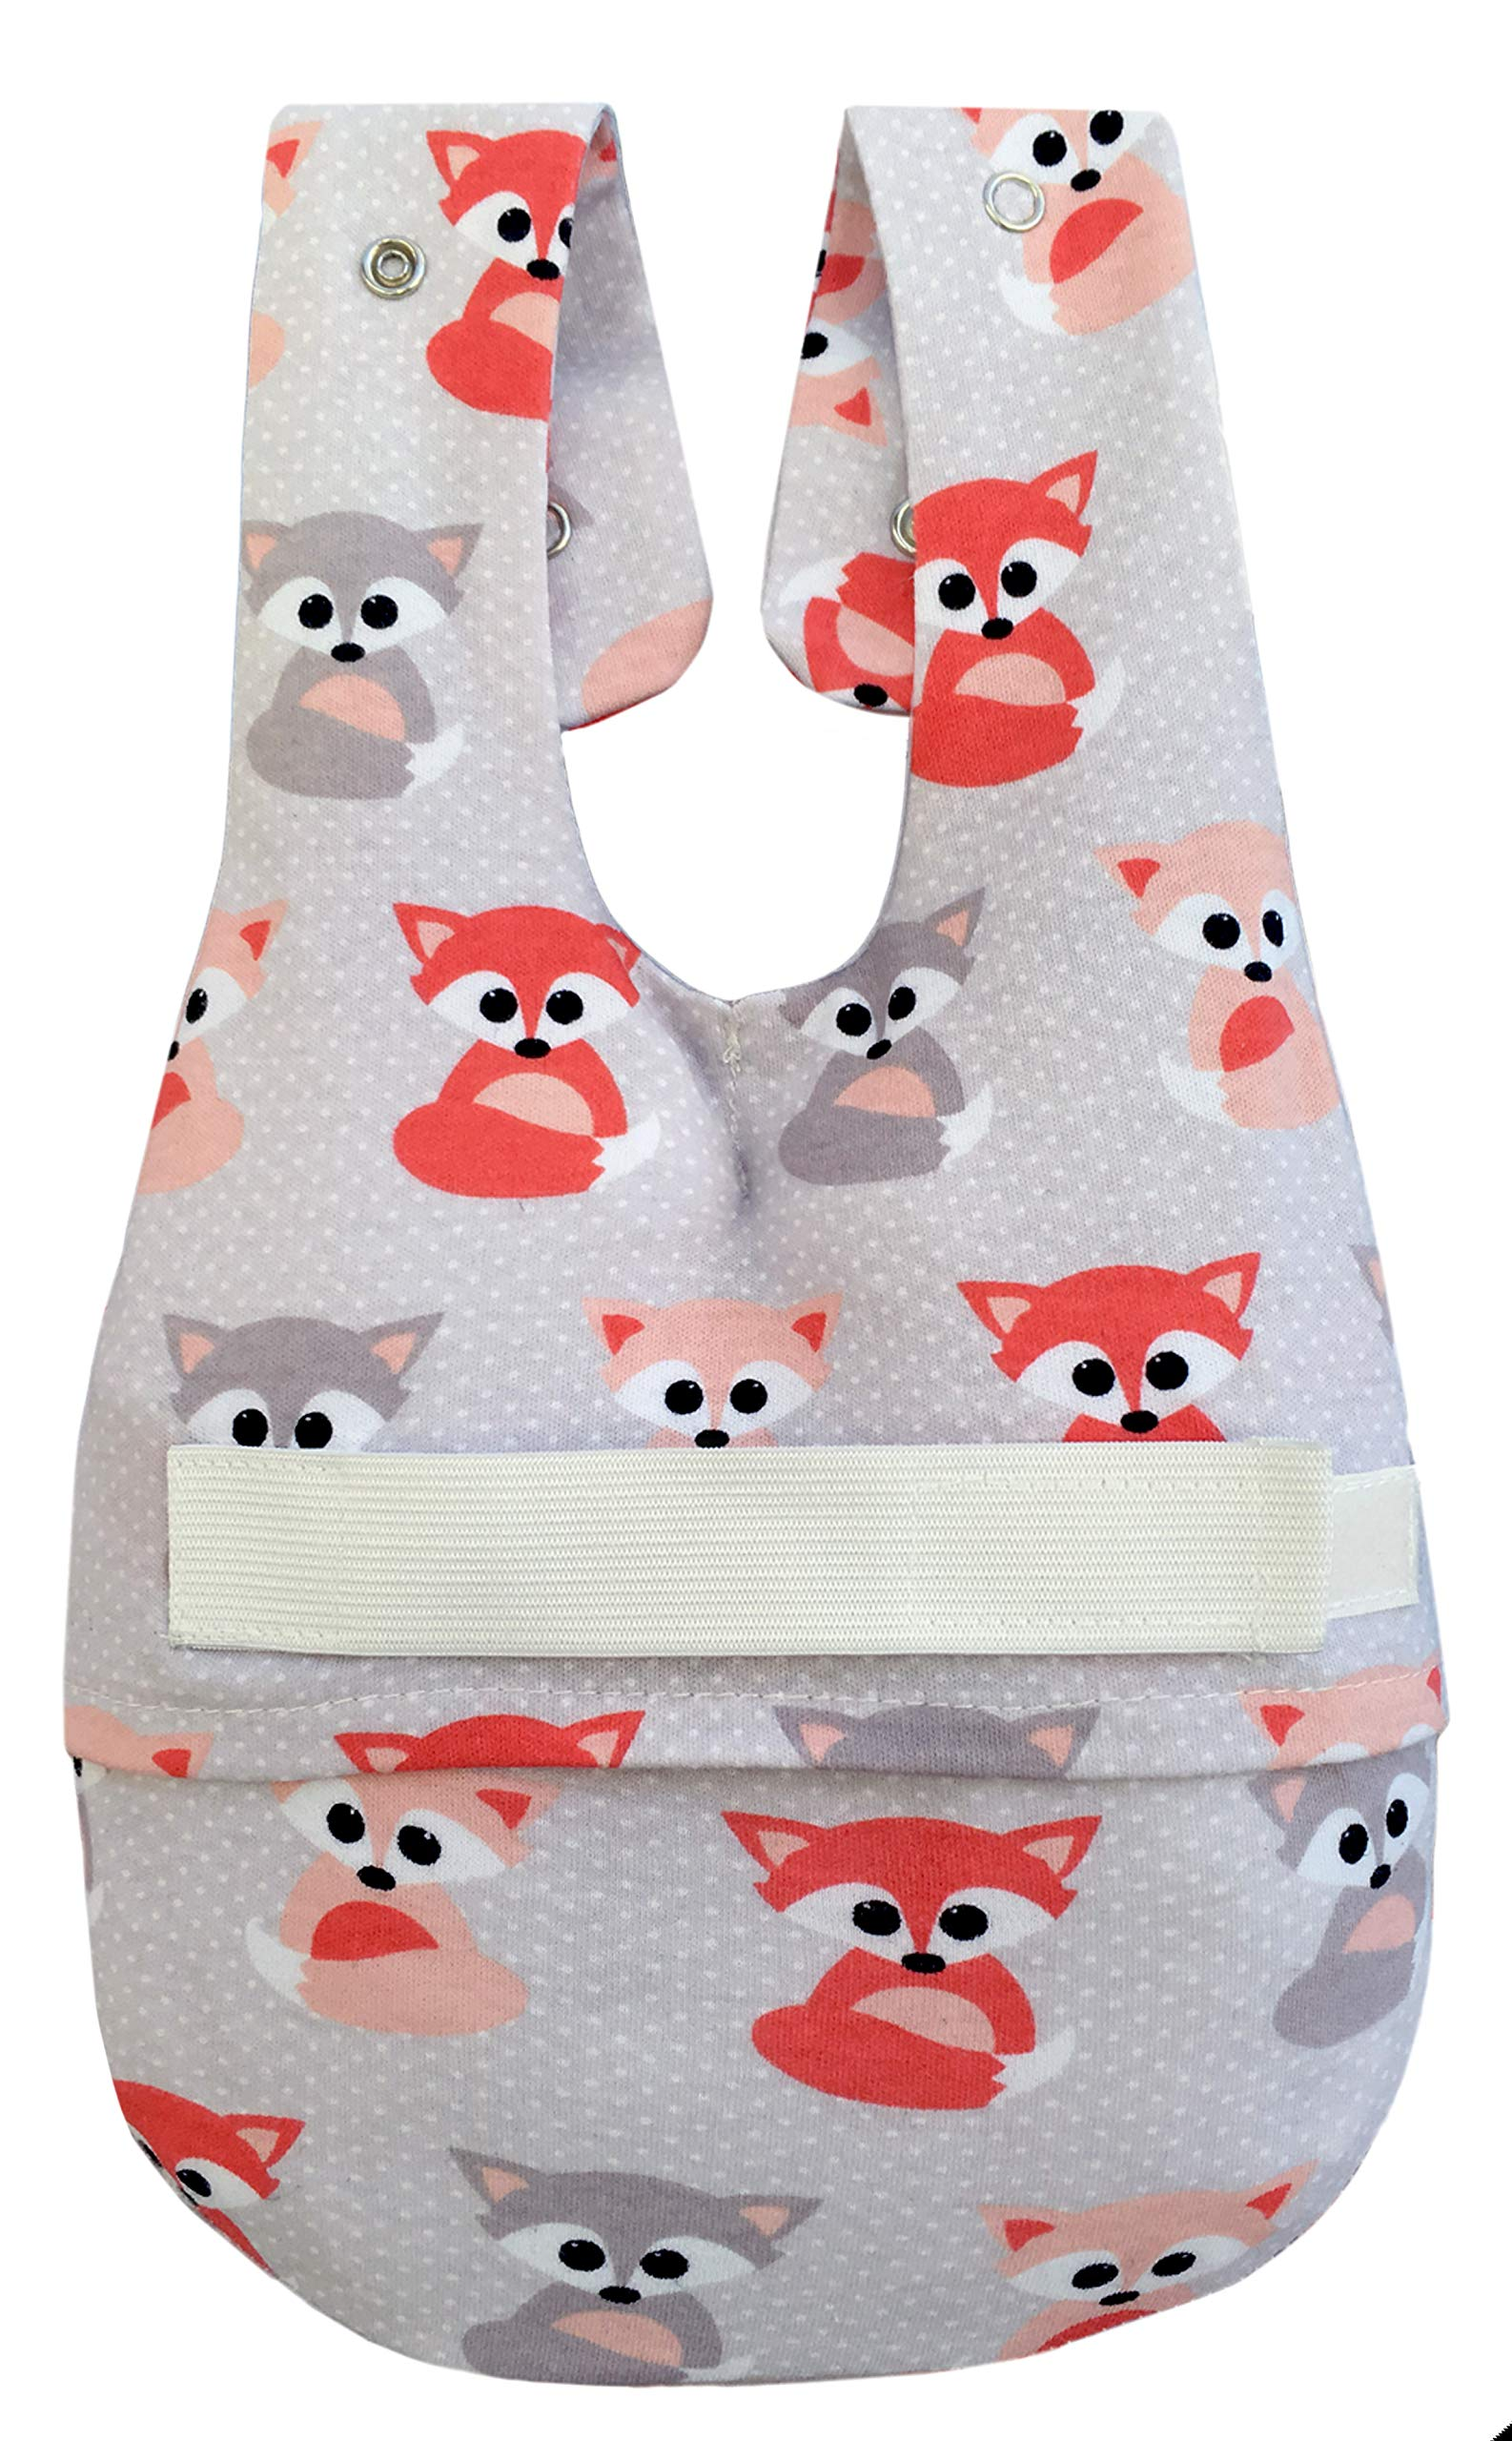 Baby Bottle Holder - The Willow Pillow- Original Size - Baby Foxes by Willow Pillow